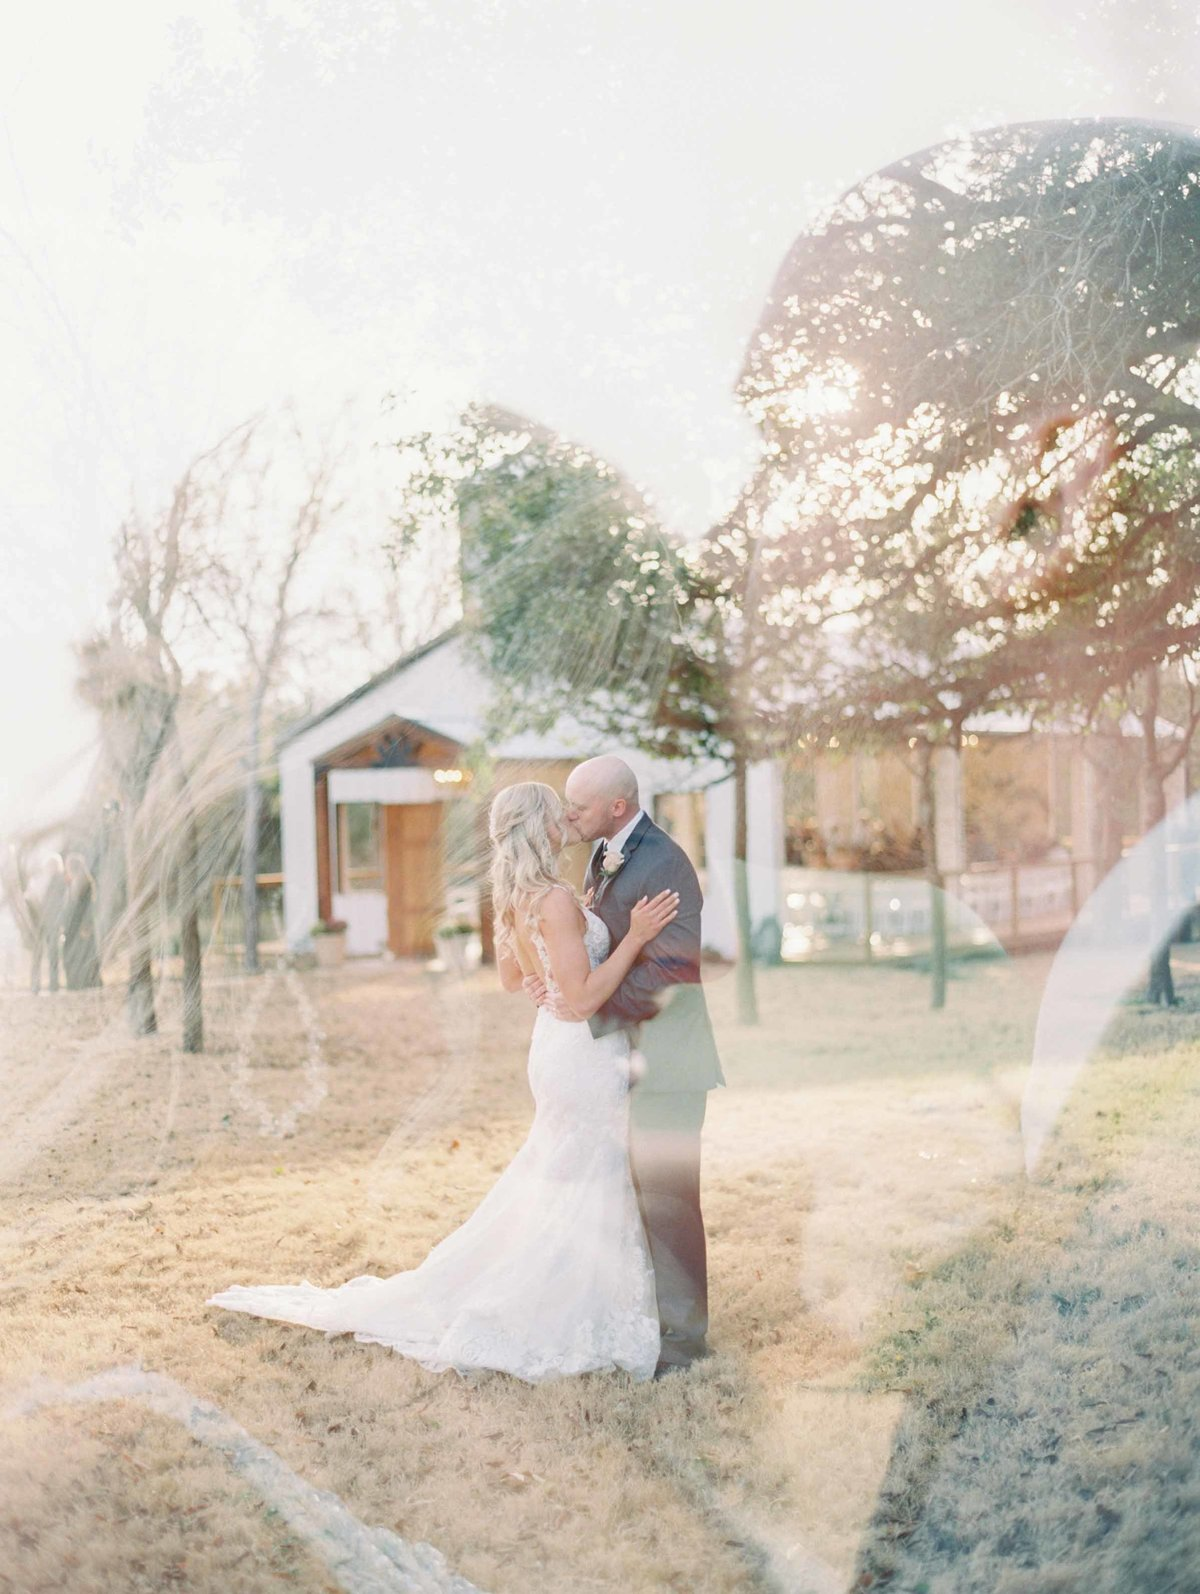 Angel_owens_photography_wedding75